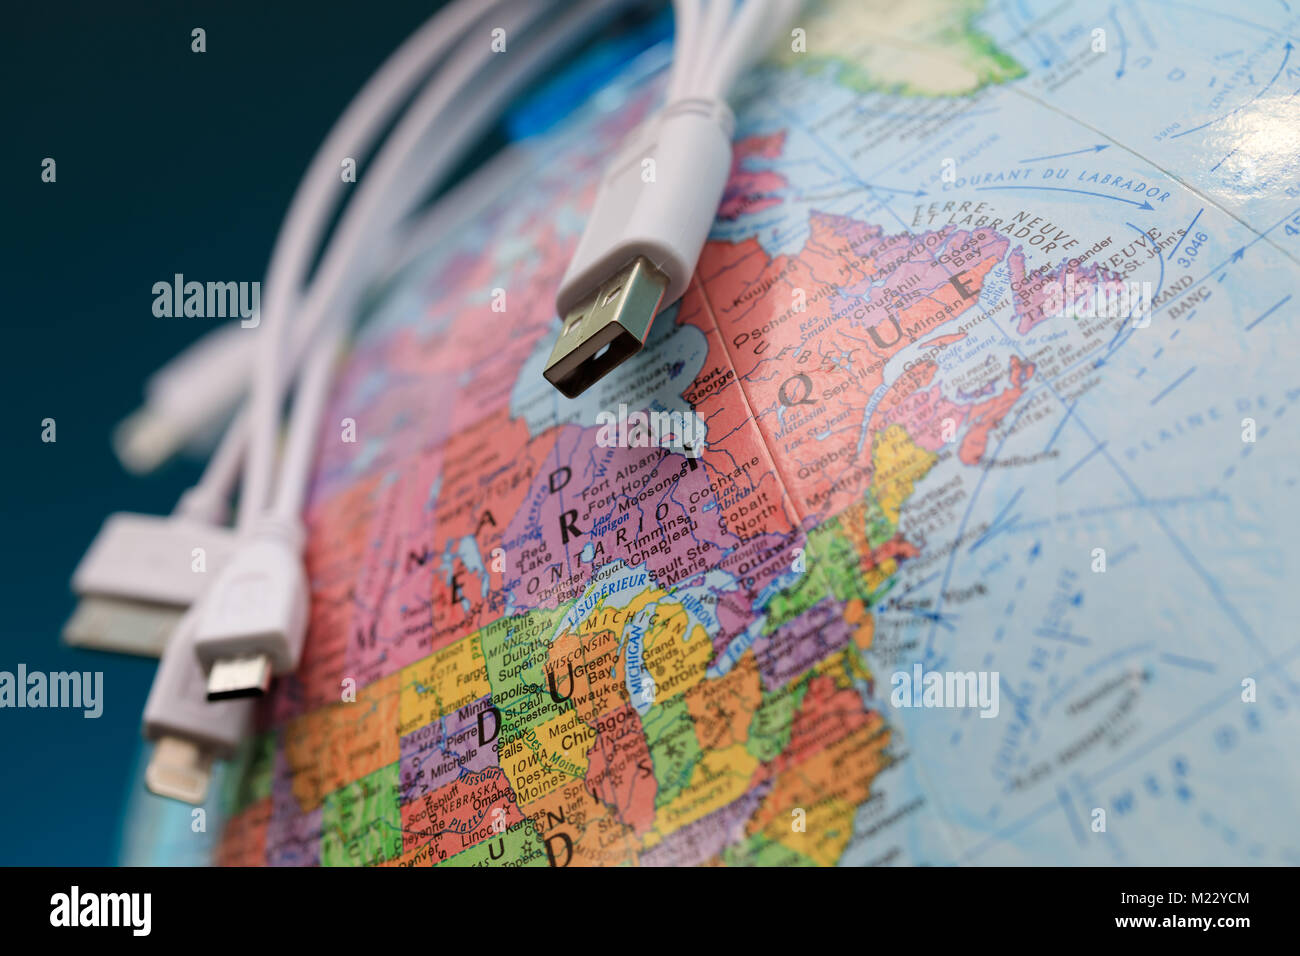 Globe and usb cables (toponymics are written in French). Focus on province of Ontario, Canada. Global communication. - Stock Image